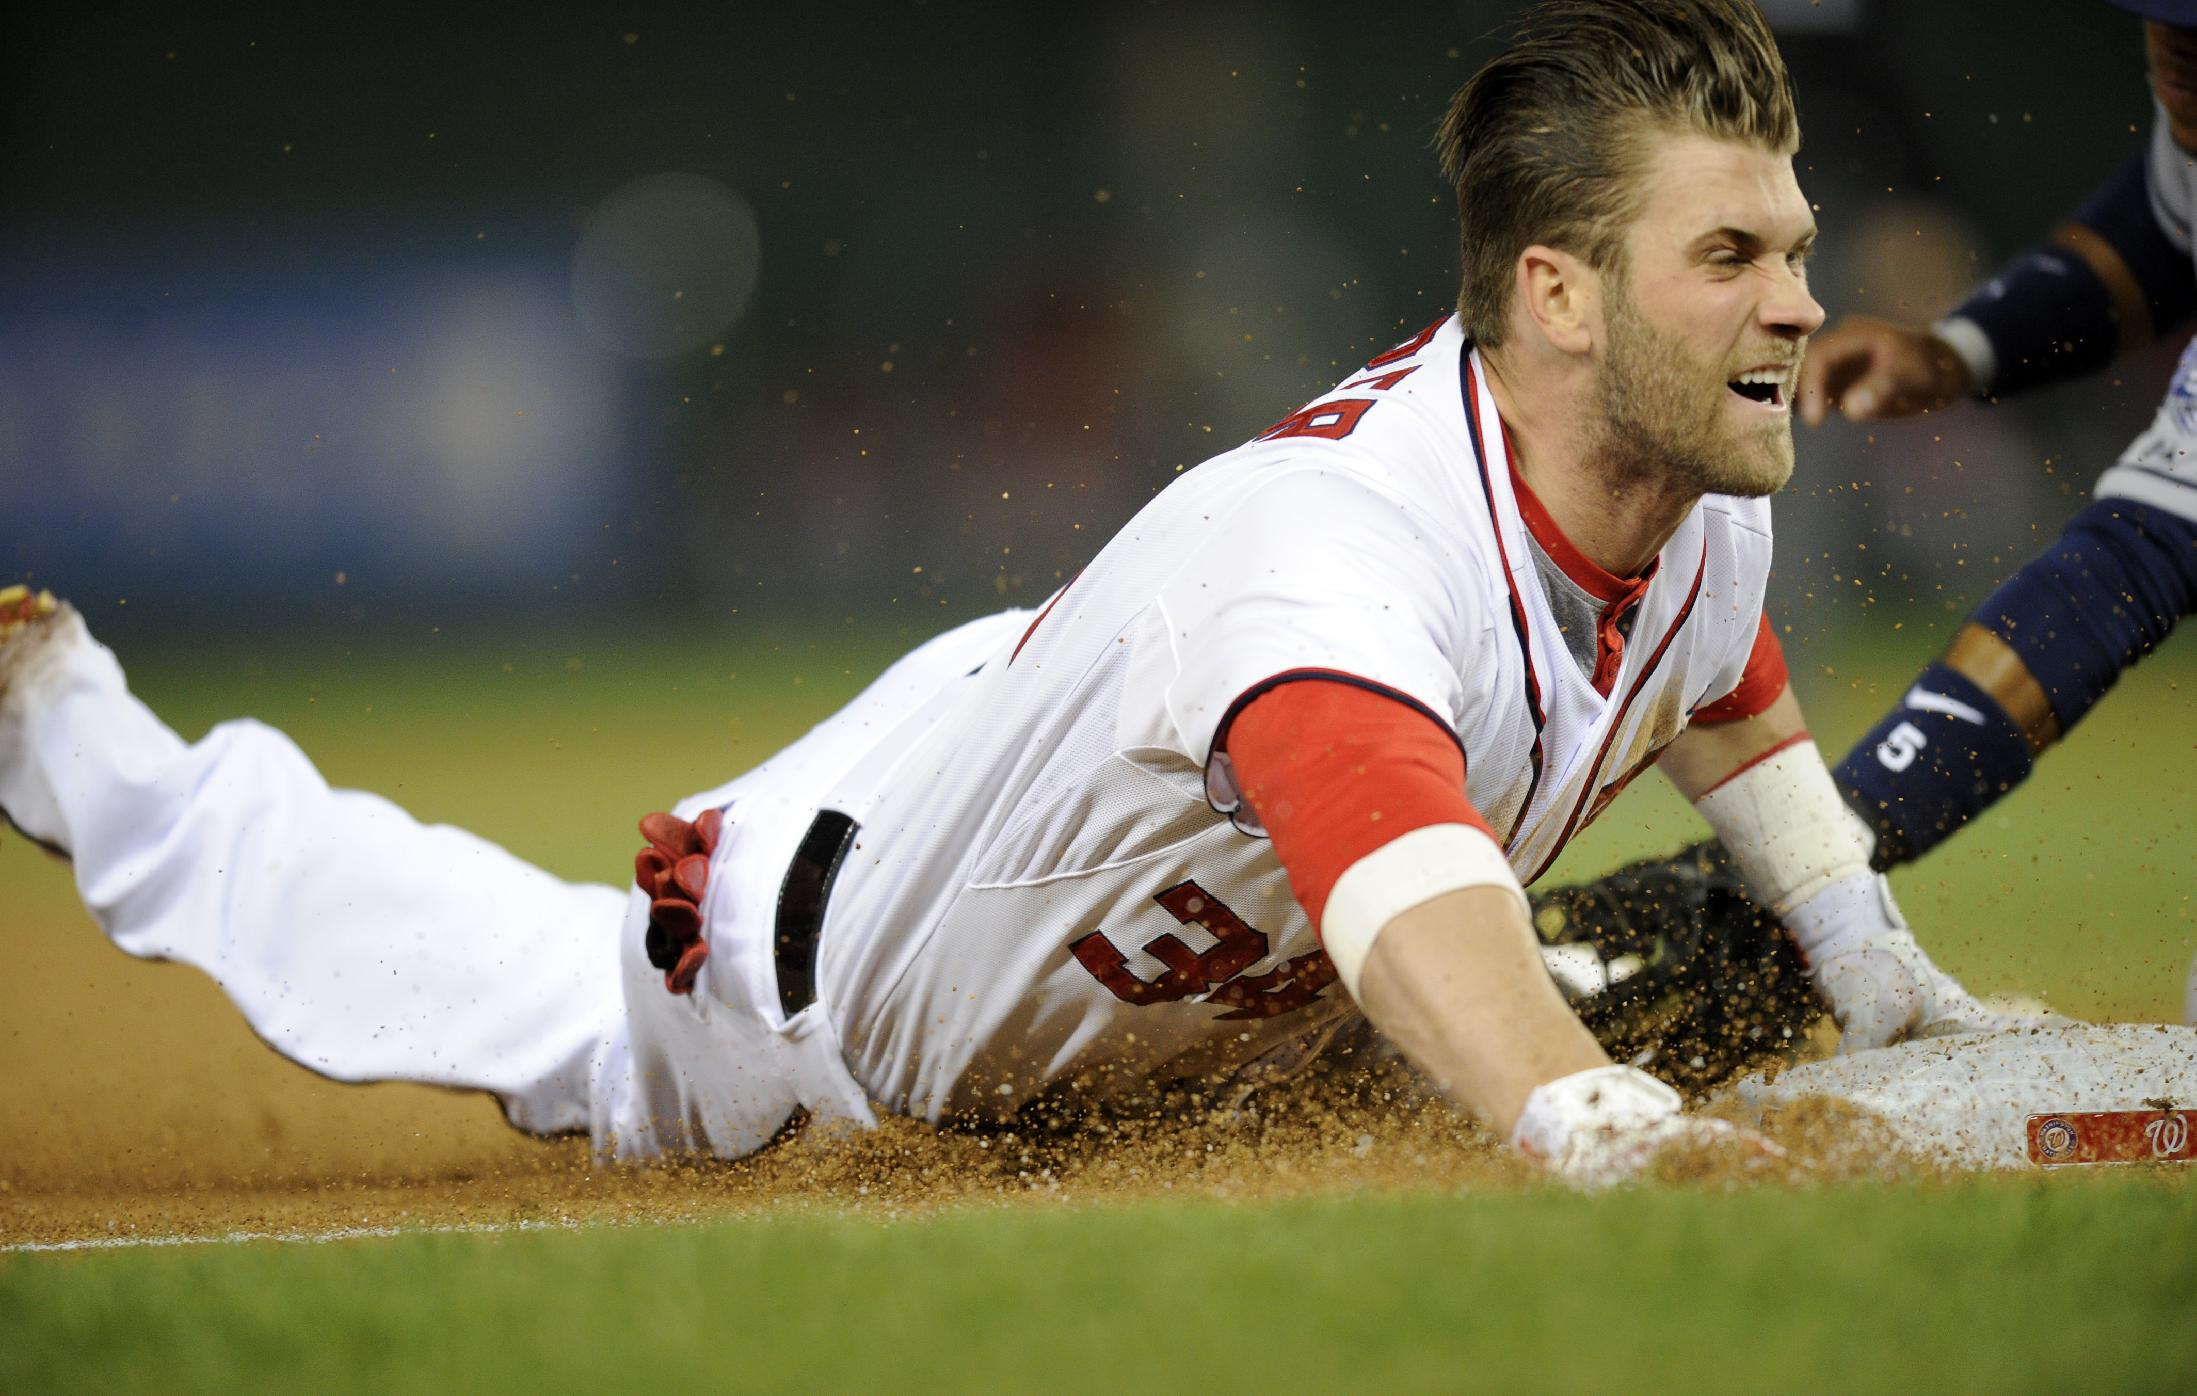 Bryce Harper absent from Nationals lineup after injuring thumb …